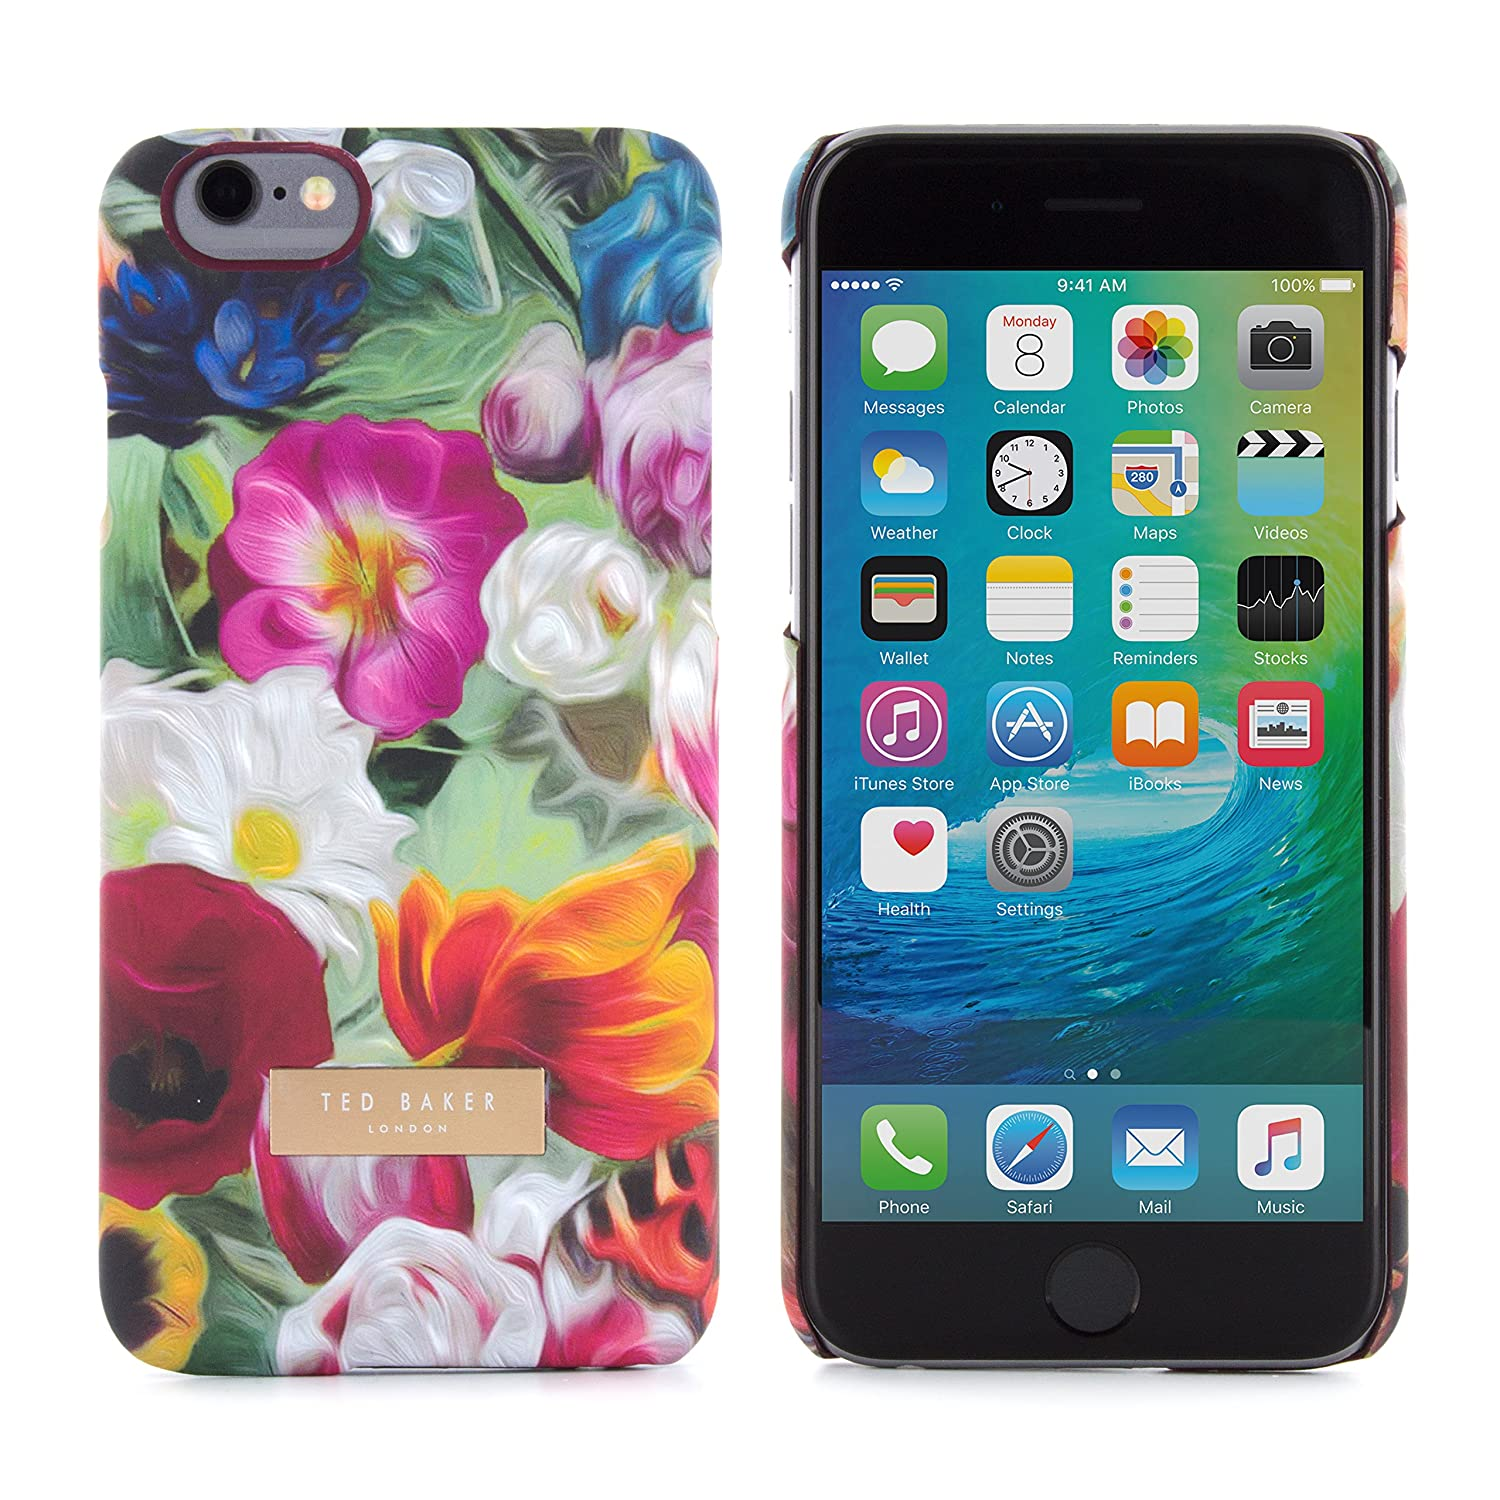 outlet store d564e f2e76 Ted Baker Cell Phone Case for iPhone 6/6S - Retail Packaging - Multi